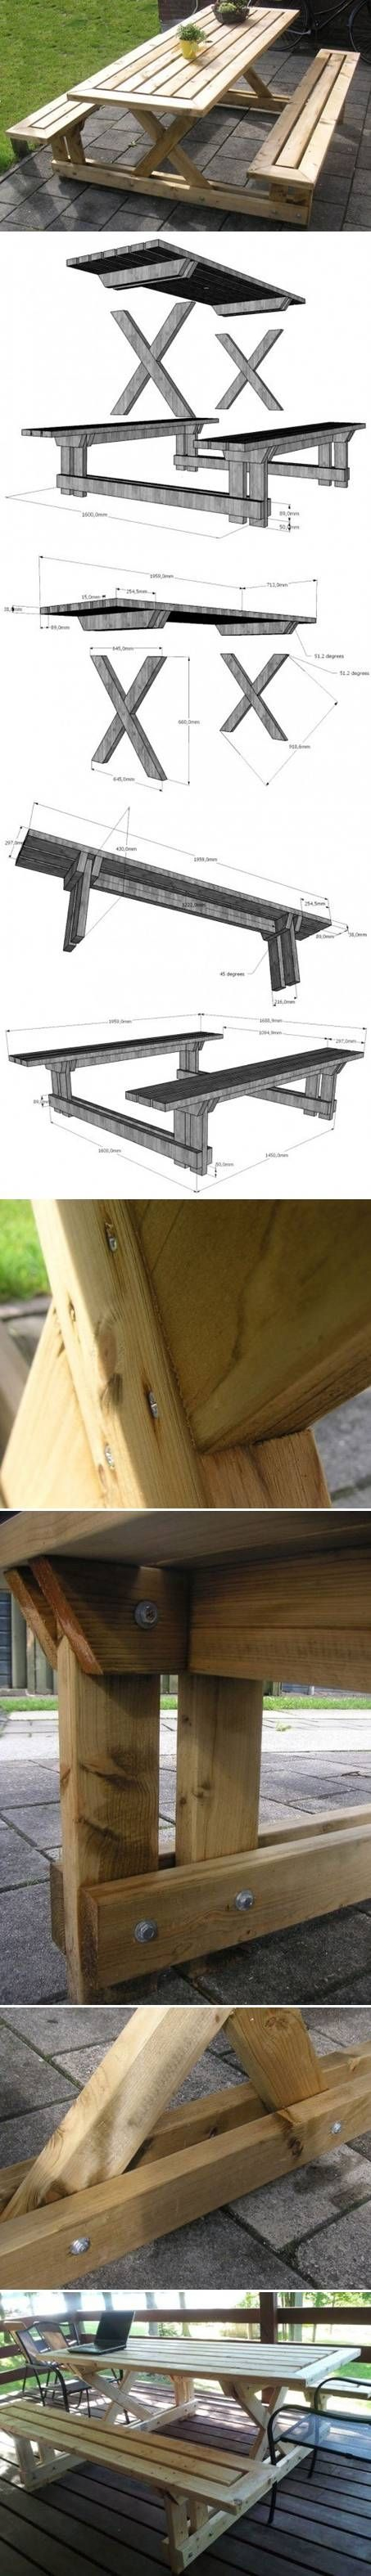 Garden benches benches and diy picnic table on pinterest - Fabriquer table picnic ...